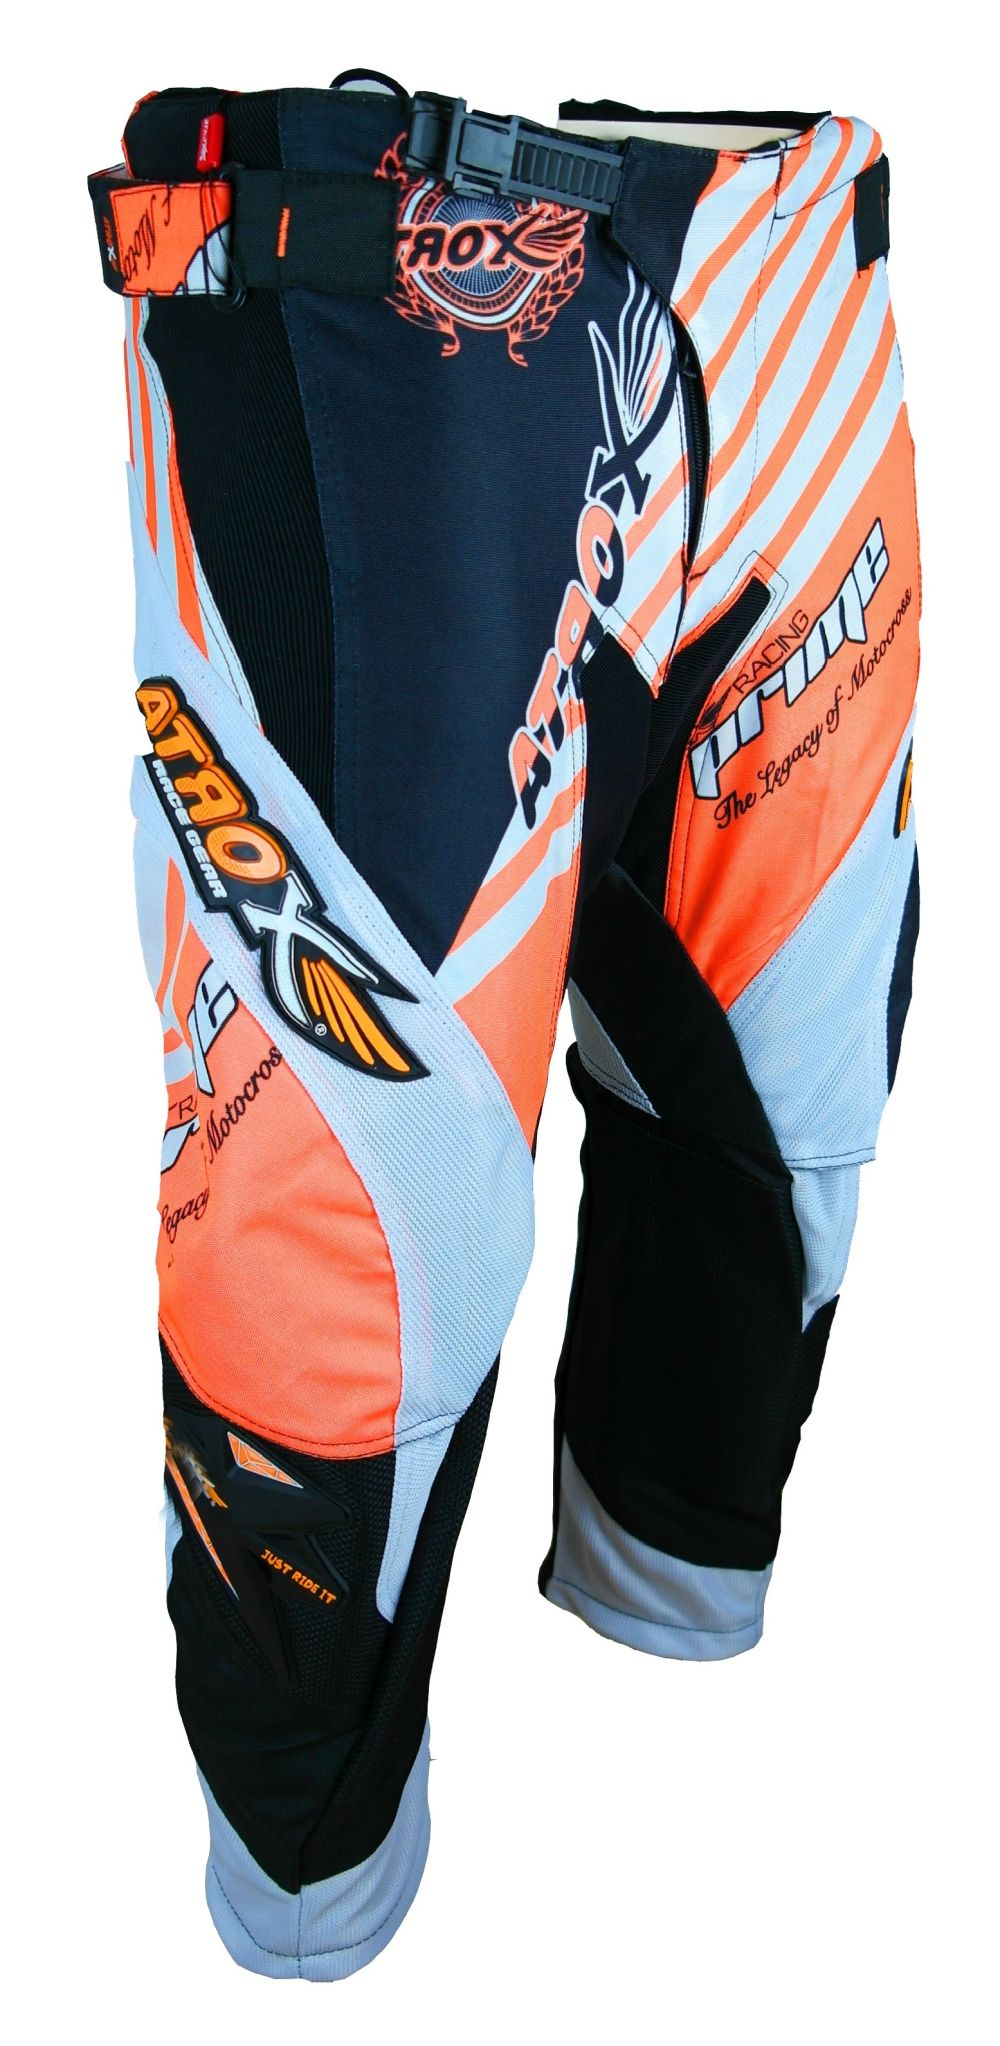 Heyberry MX-Cross Quad Motocross Hose schwarz weiß orange M L XL XXL